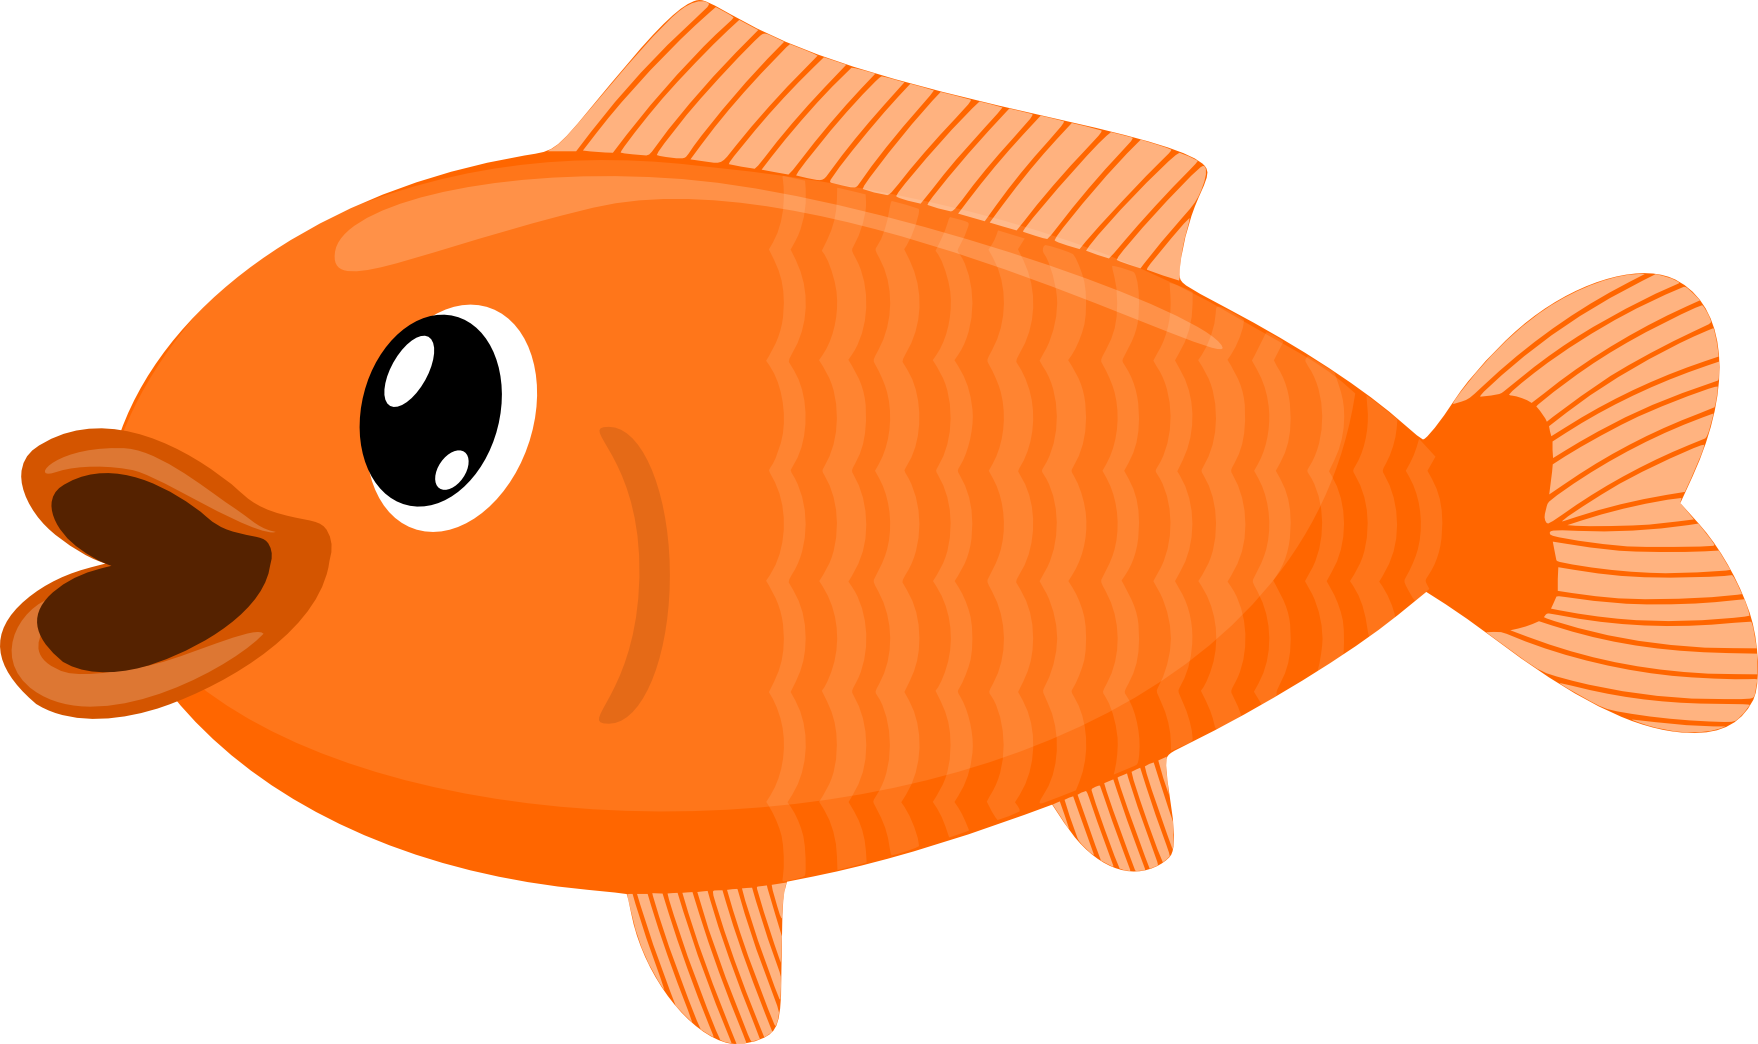 Fish with a question mark in it clipart graphic royalty free stock Koi Fish Clipart at GetDrawings.com | Free for personal use Koi Fish ... graphic royalty free stock